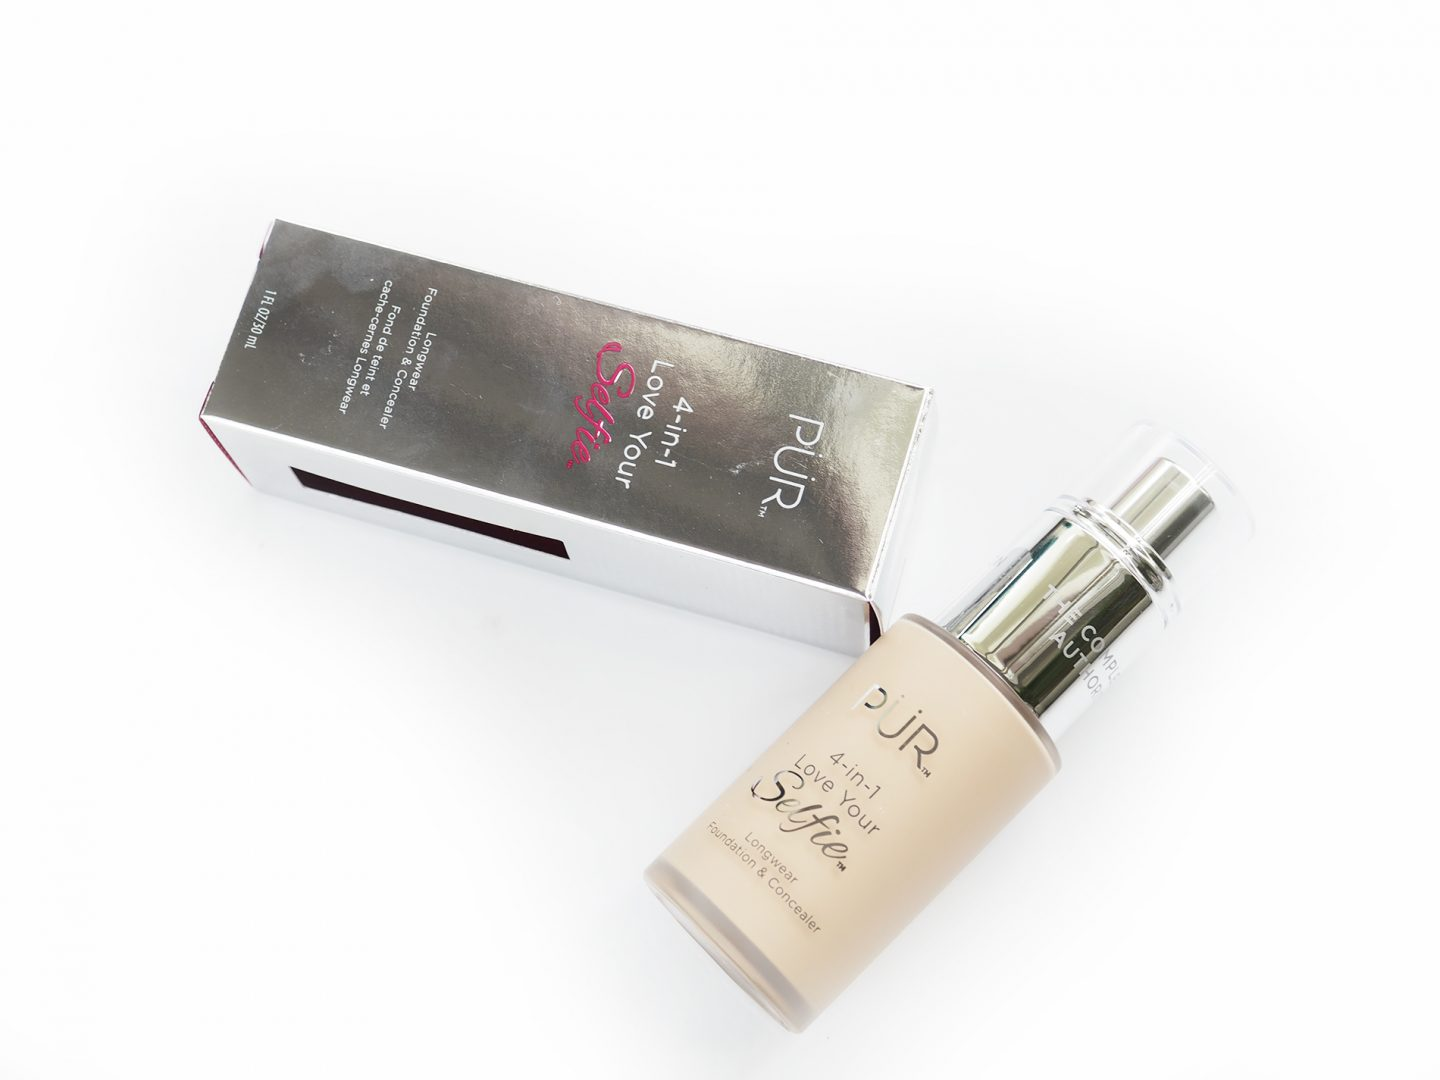 Pur Cosmetics 4-in-1 Love Your Selfie Longwear Foundation and Concealer